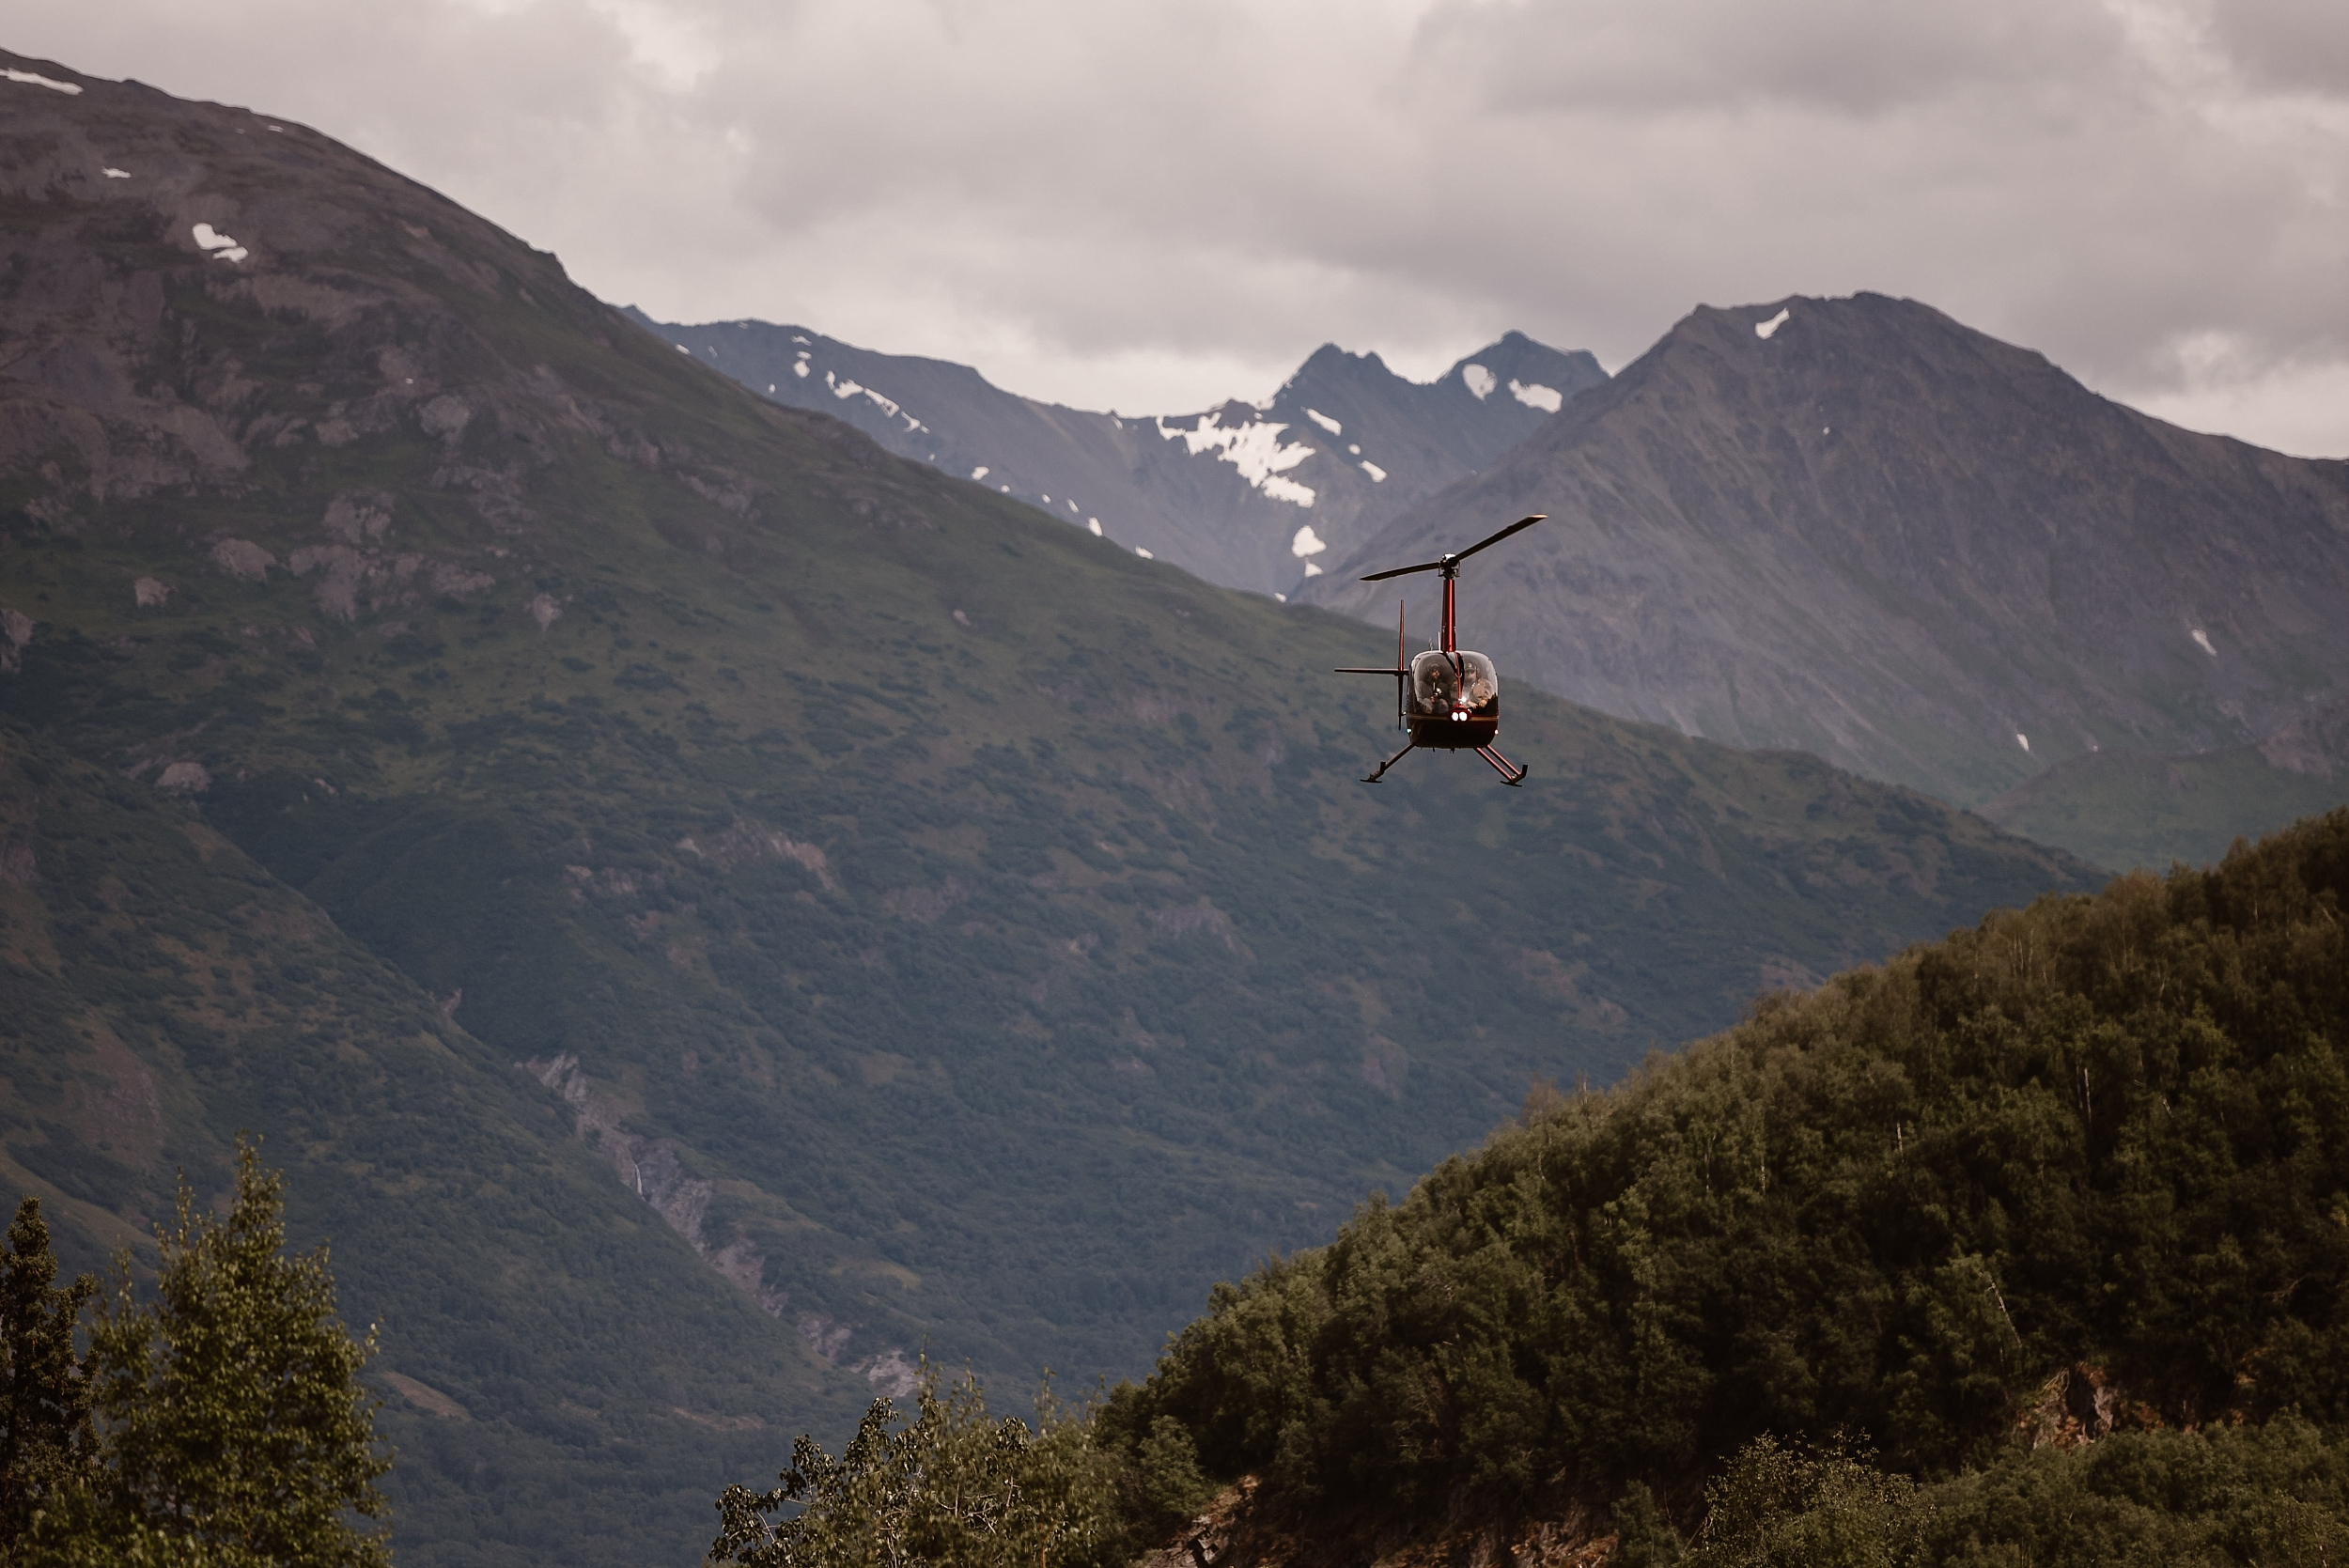 In the distance, among green hills and snowy mountain peaks, a helicopter flies toward the camera. This elopement photo, captured by Alaskan elopement photographers Adventure Instead, shows the helicopter that will chauffeur Jordyn and Connor on their helicopter elopement.